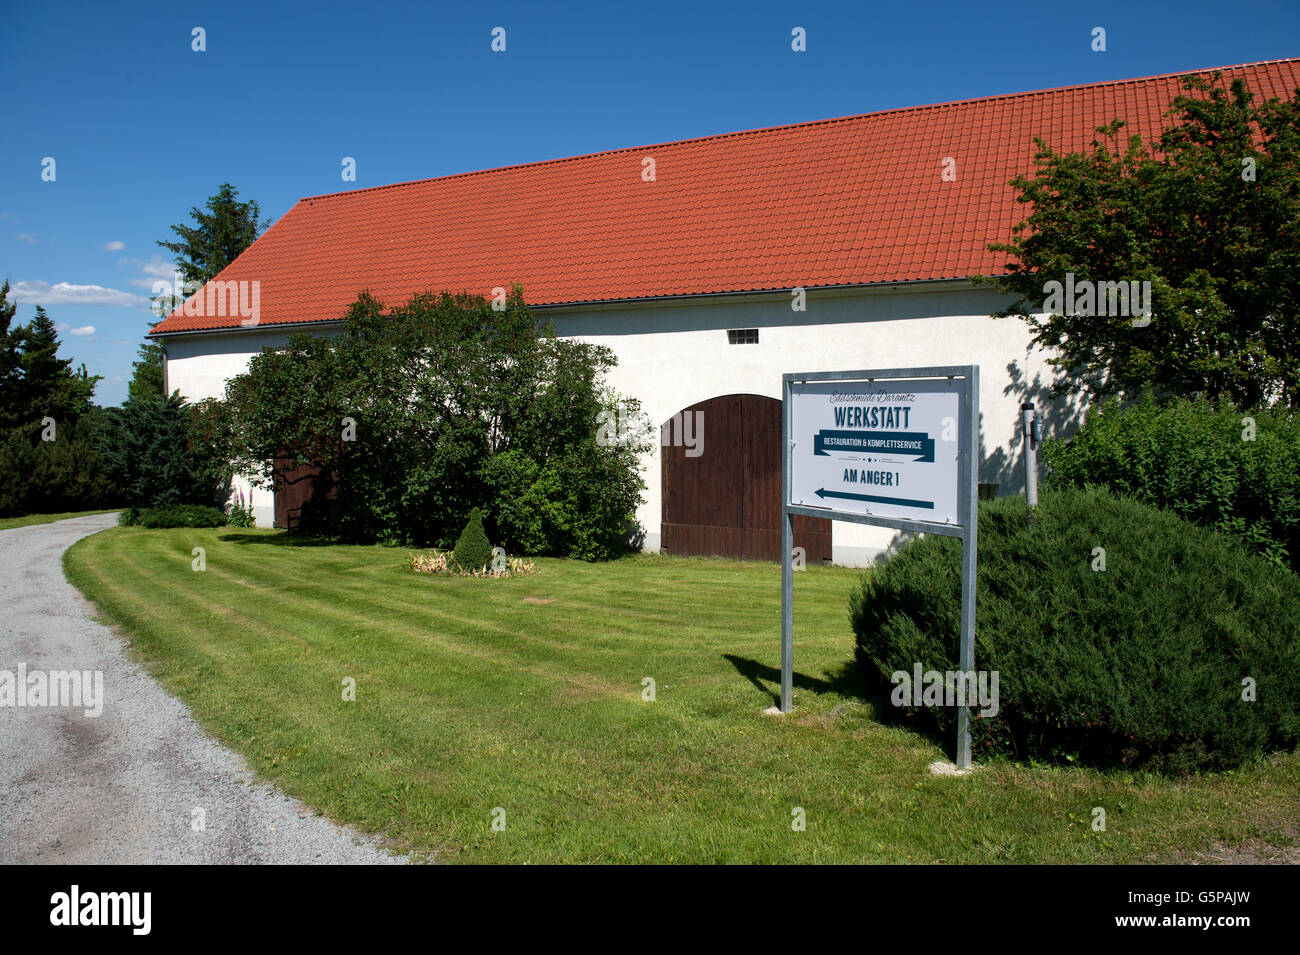 The entrance to the Edelschmiede Daranitz auto workshop in Kubschuetz/Daranitz, Germany, 06 June 2016. A Plymouth - Stock Image